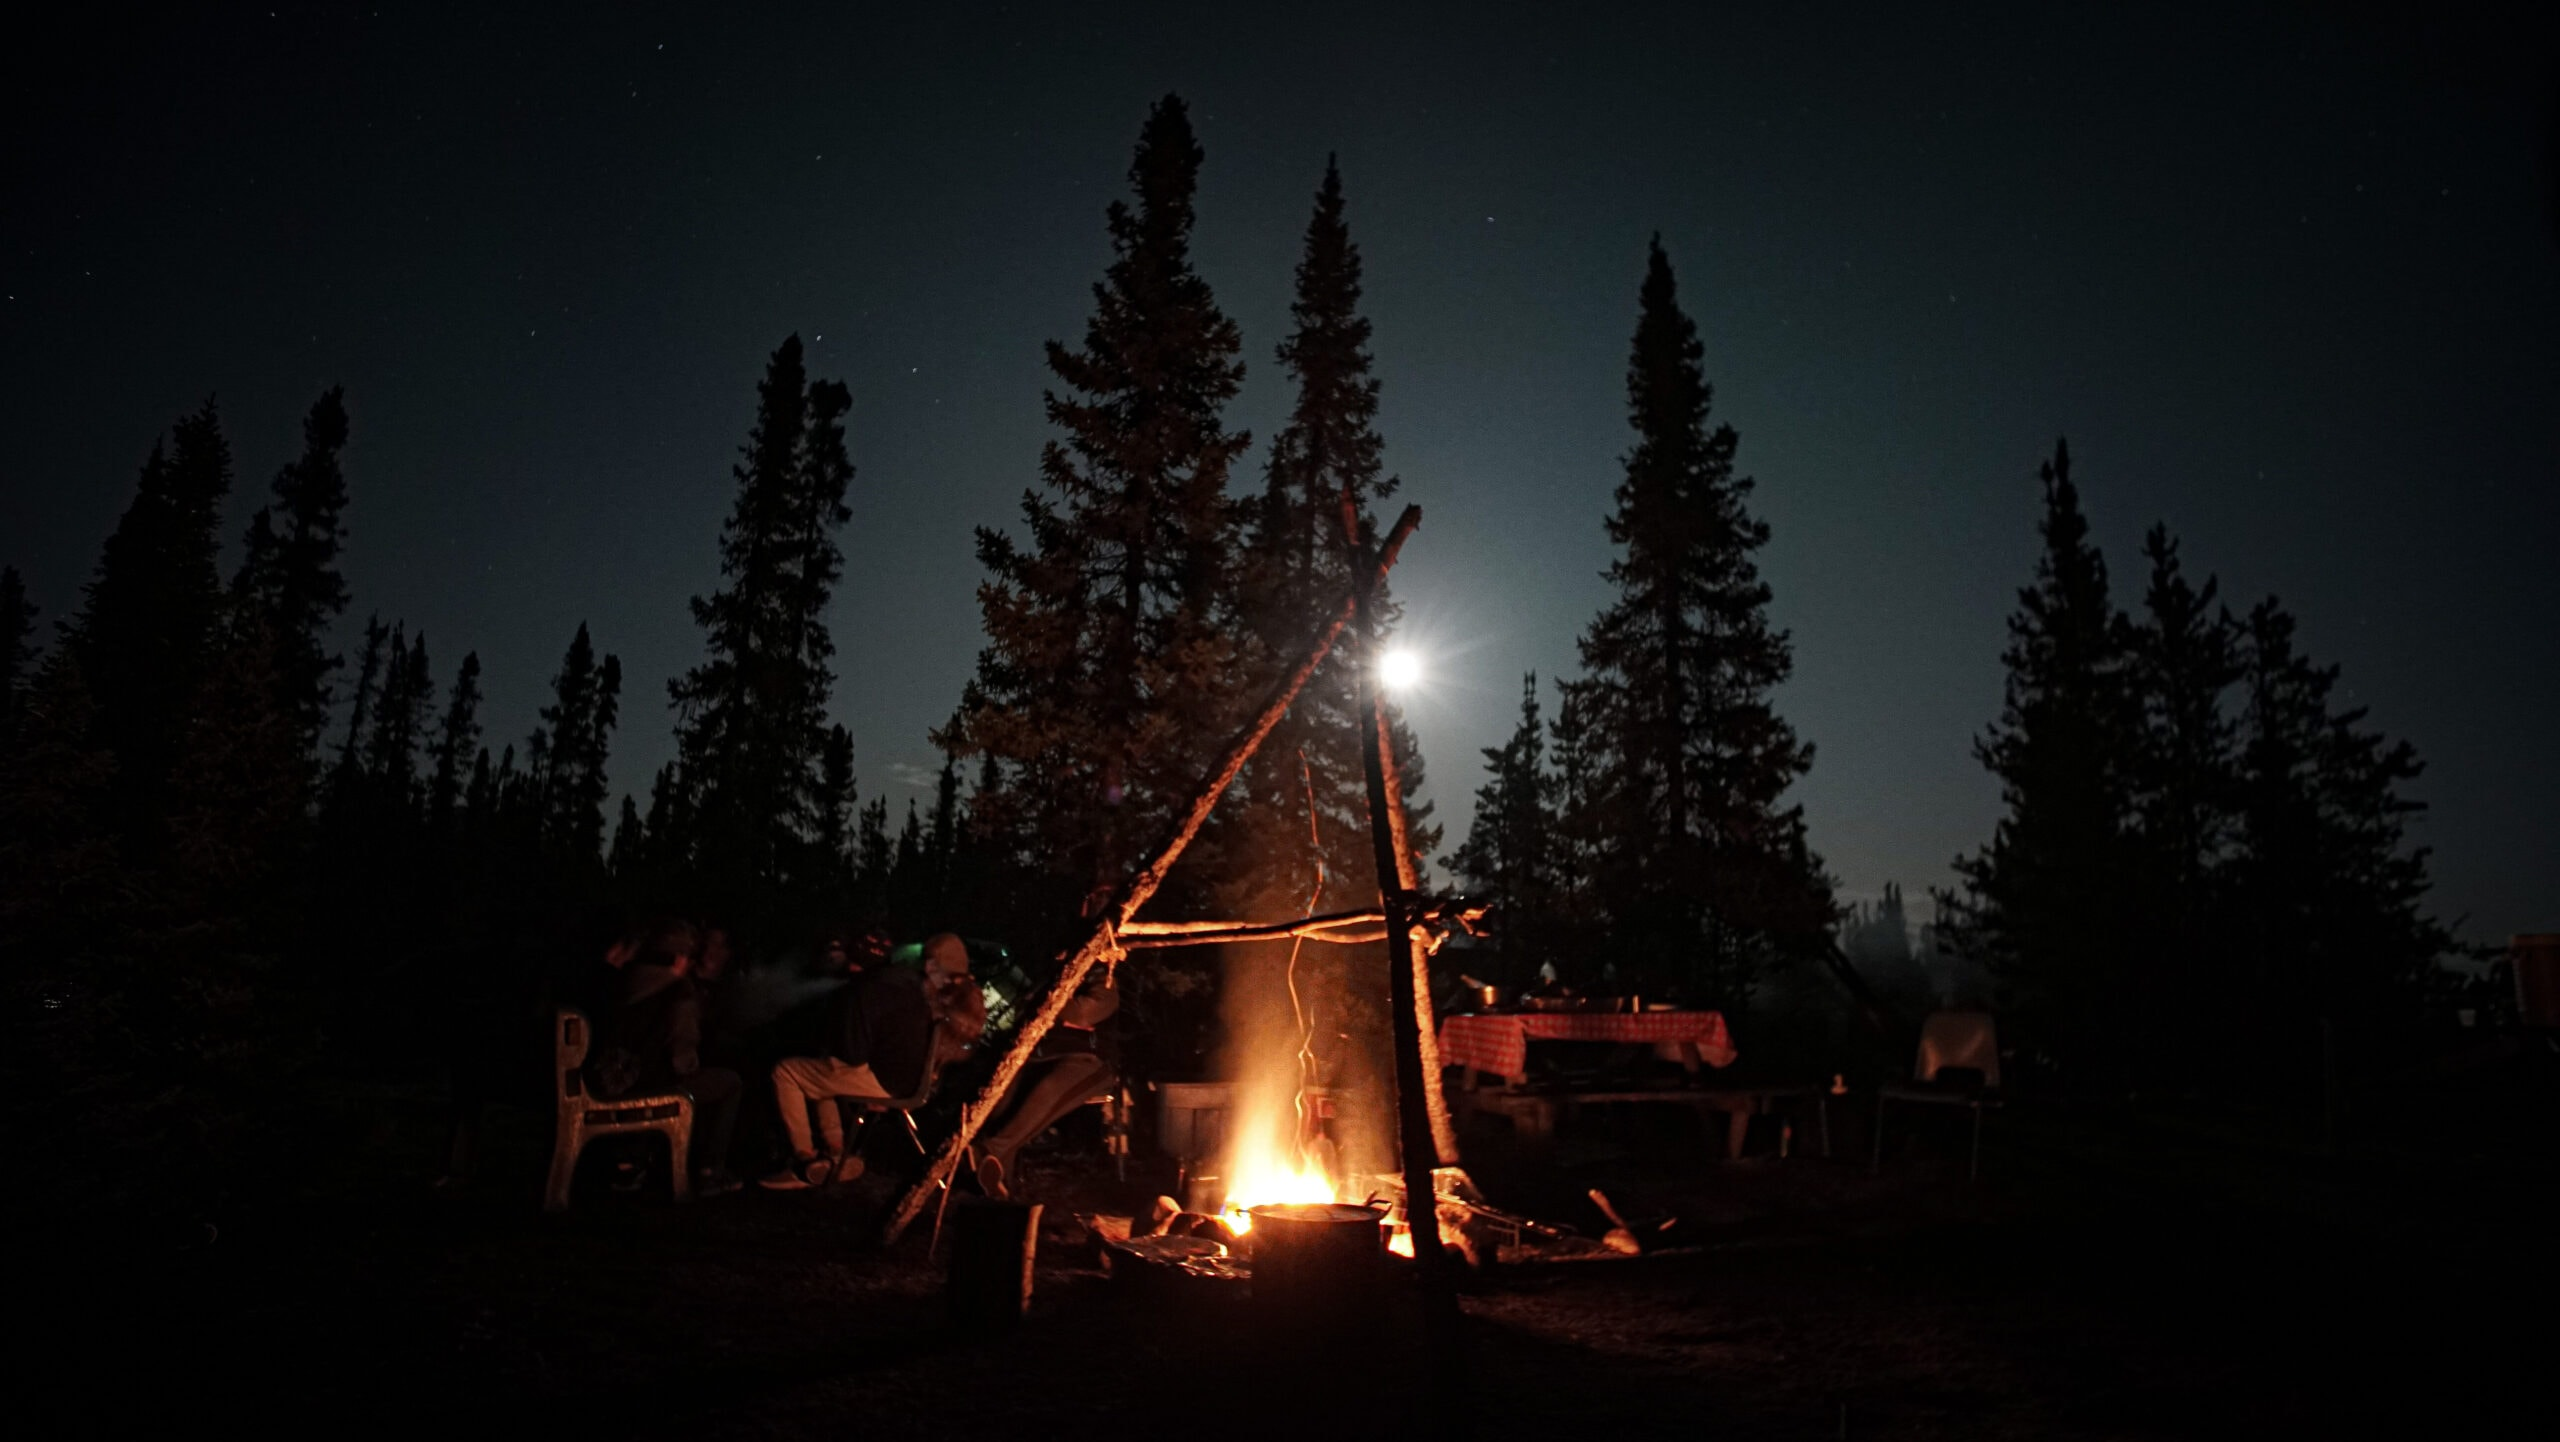 campfire at night with people sitting around it